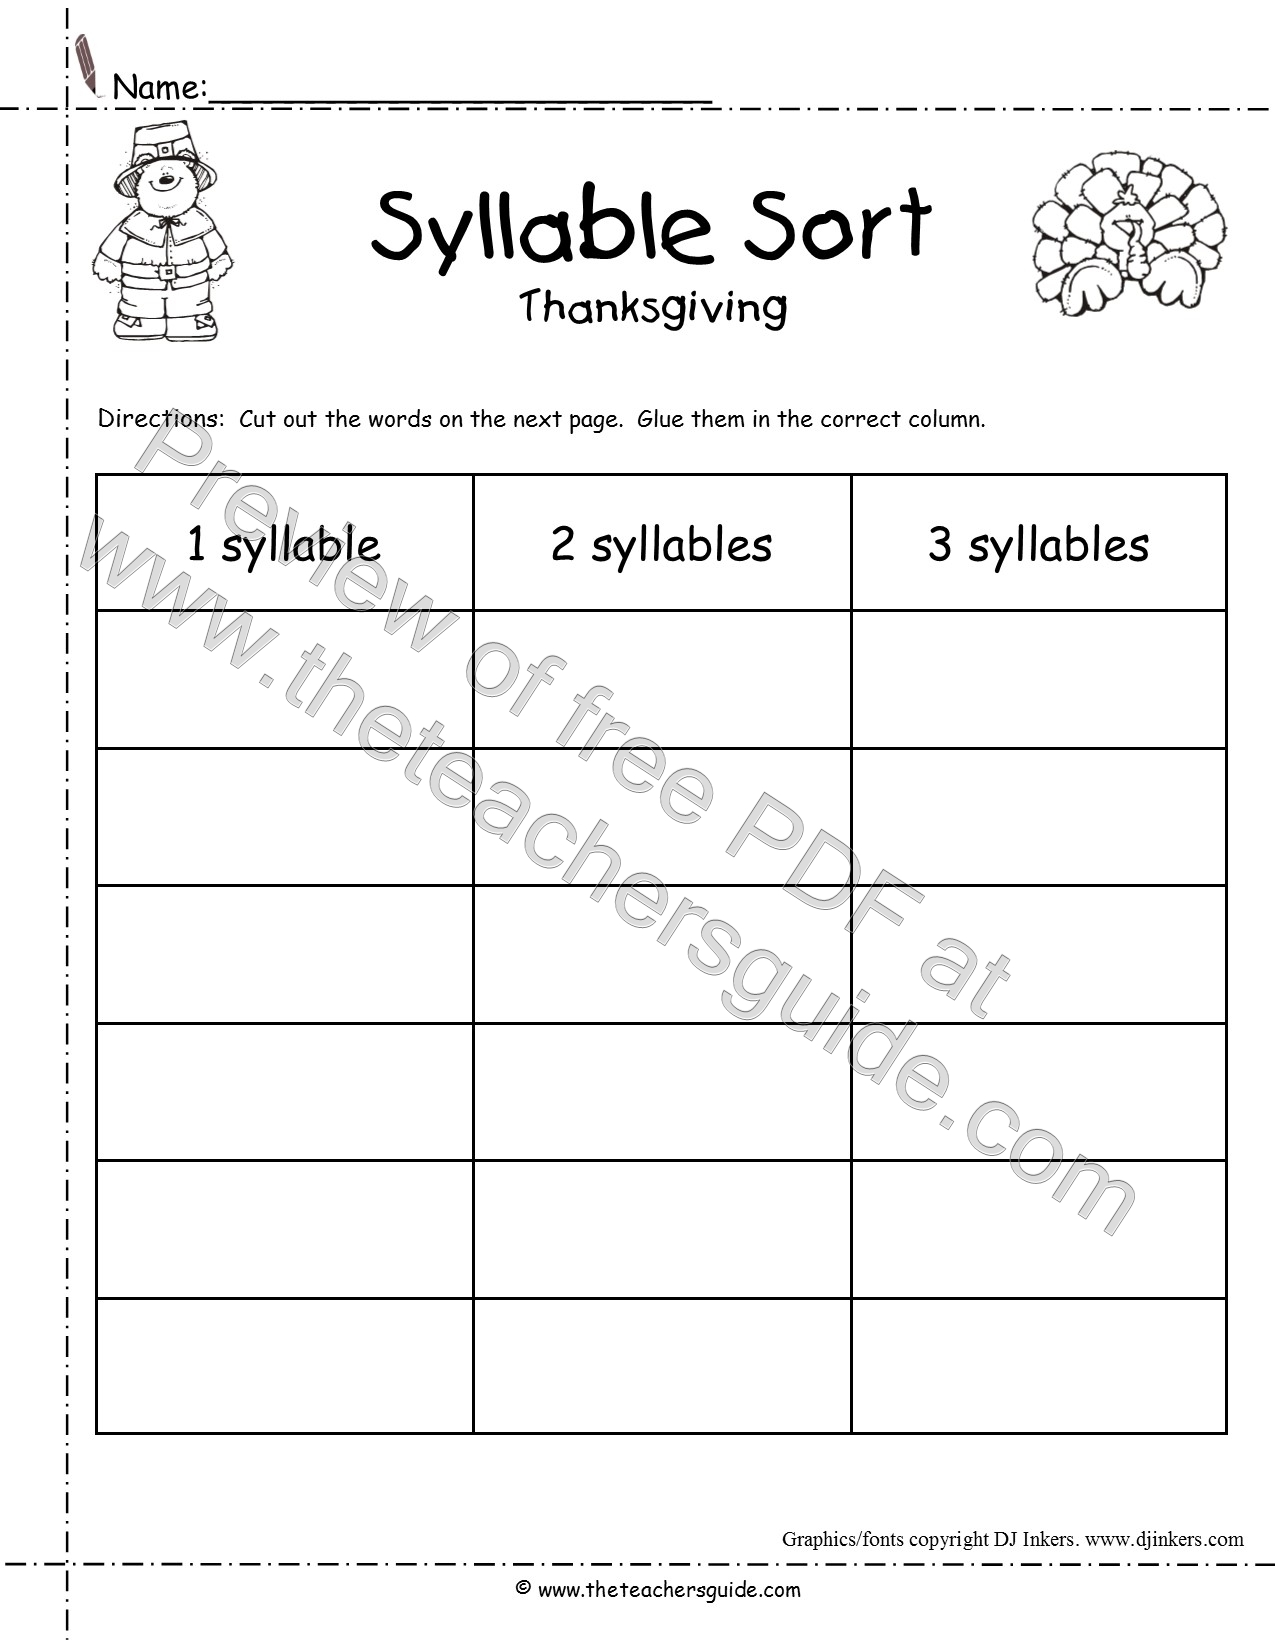 Worksheets Syllables Worksheets thanksgiving printouts from the teachers guide syllable sort